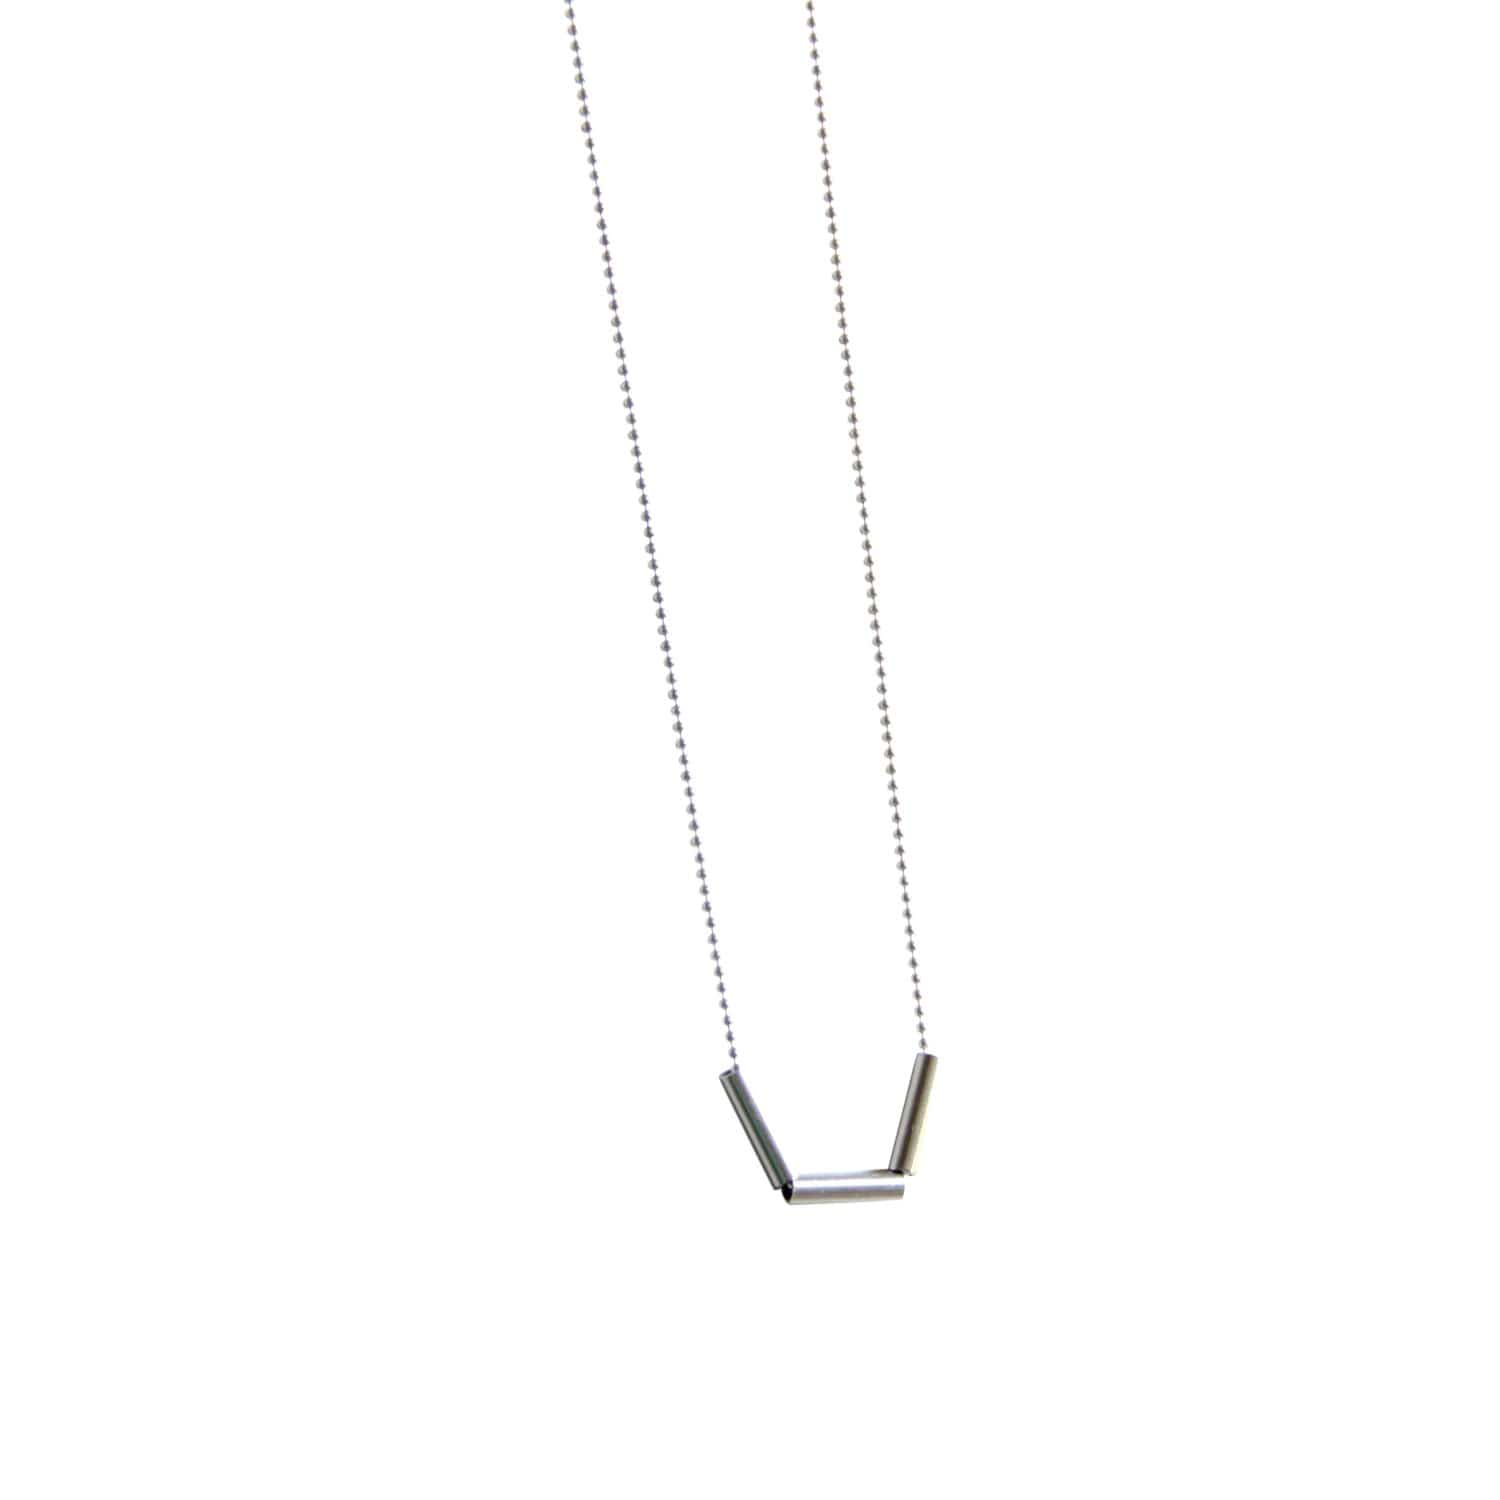 tothemetal jewelry Three Bar Silver Necklace